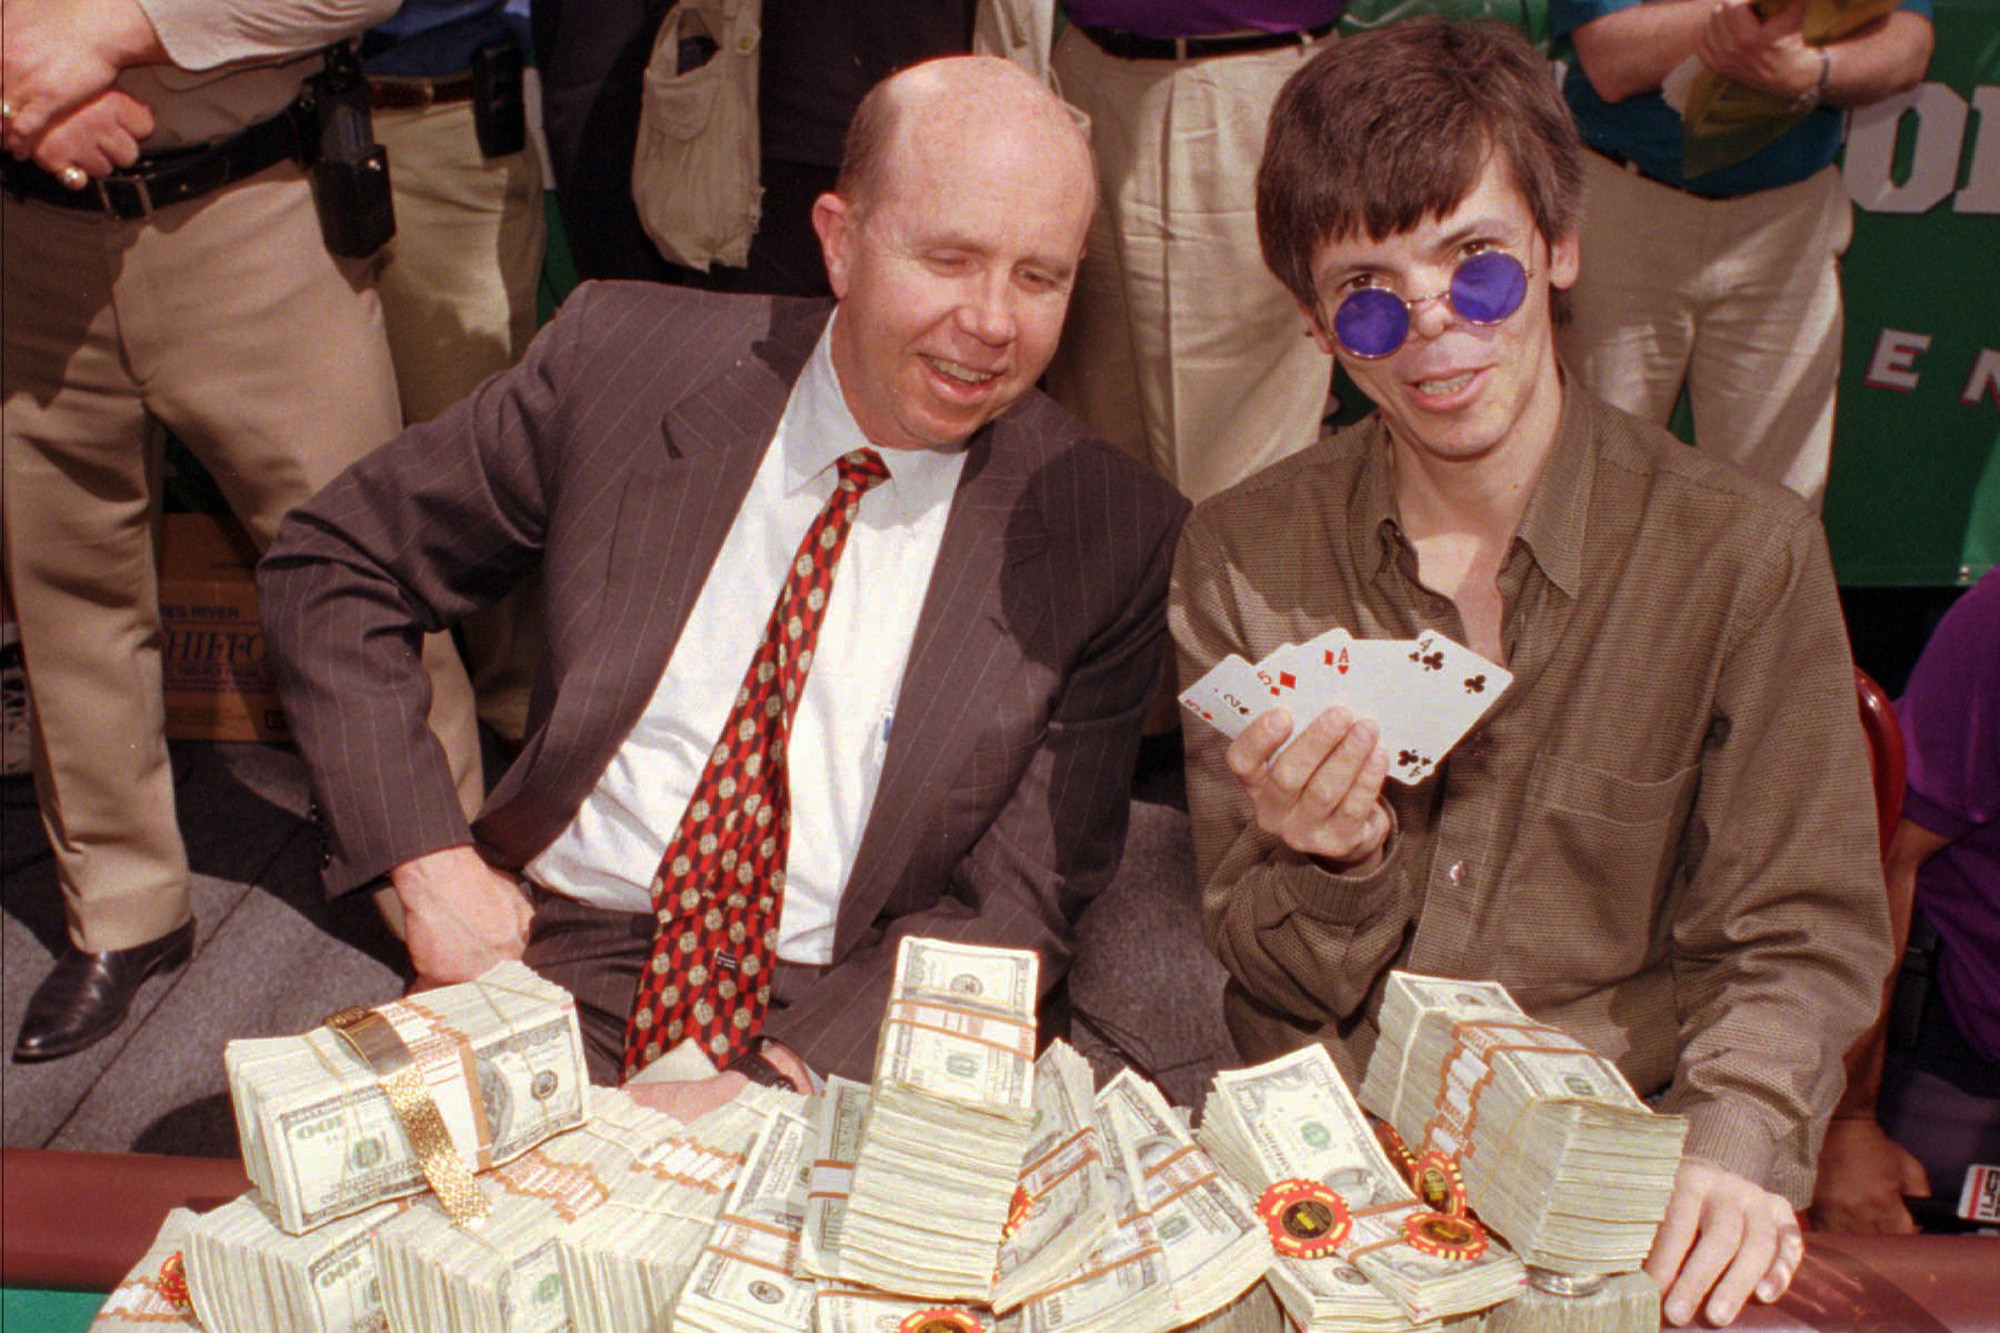 Stu Ungar death poker